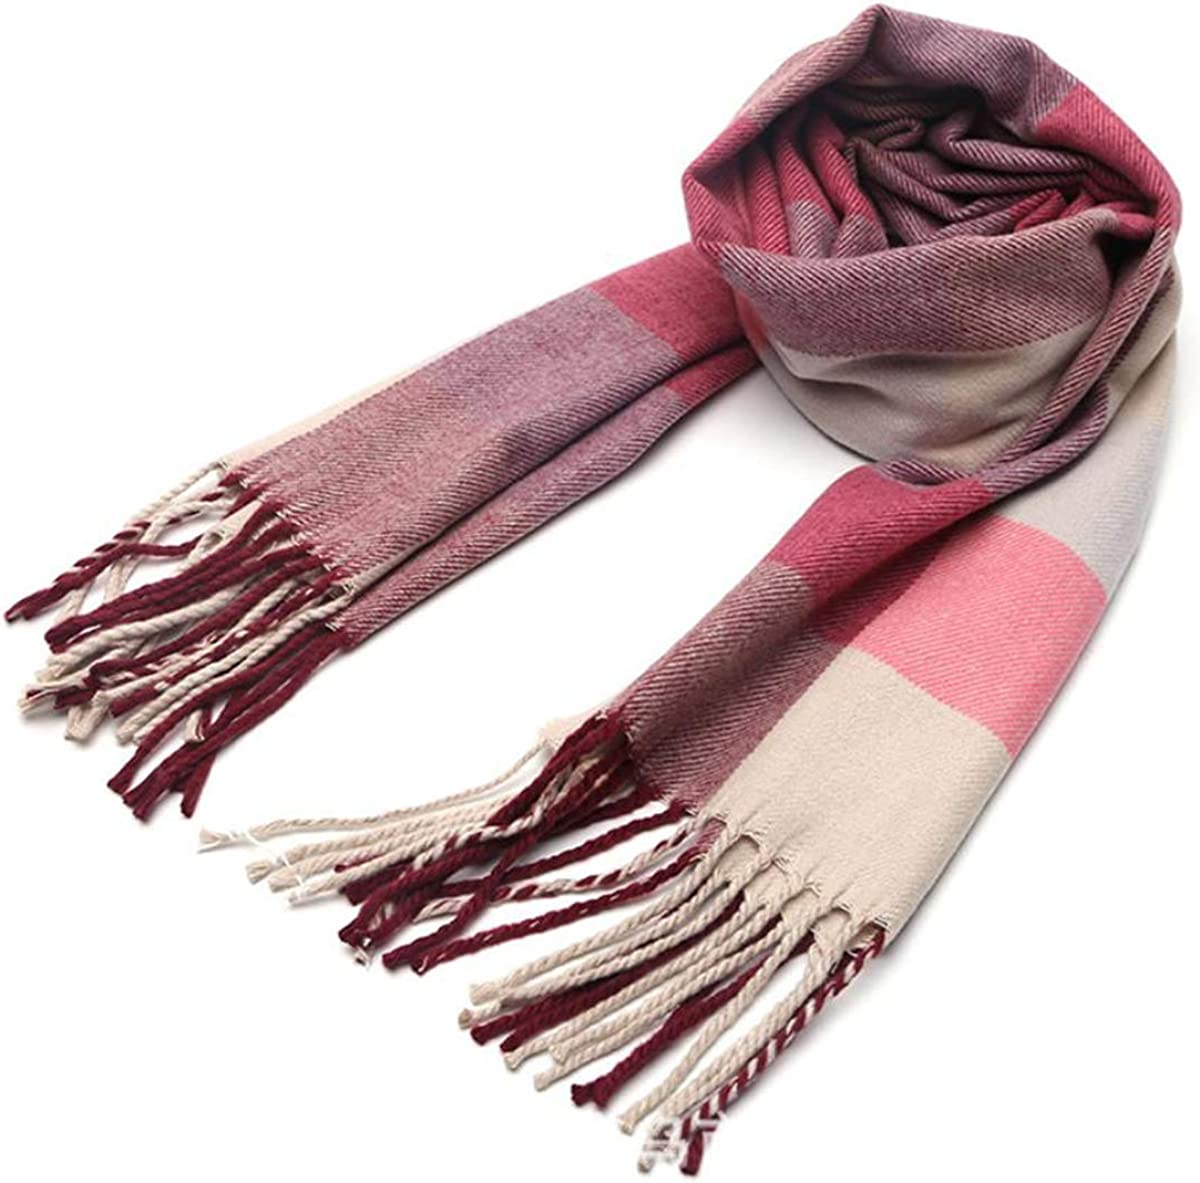 Kids Stylish Plaid Scarf Max 86% OFF Product Cashmere Warm Scarves Feel Soft Winter